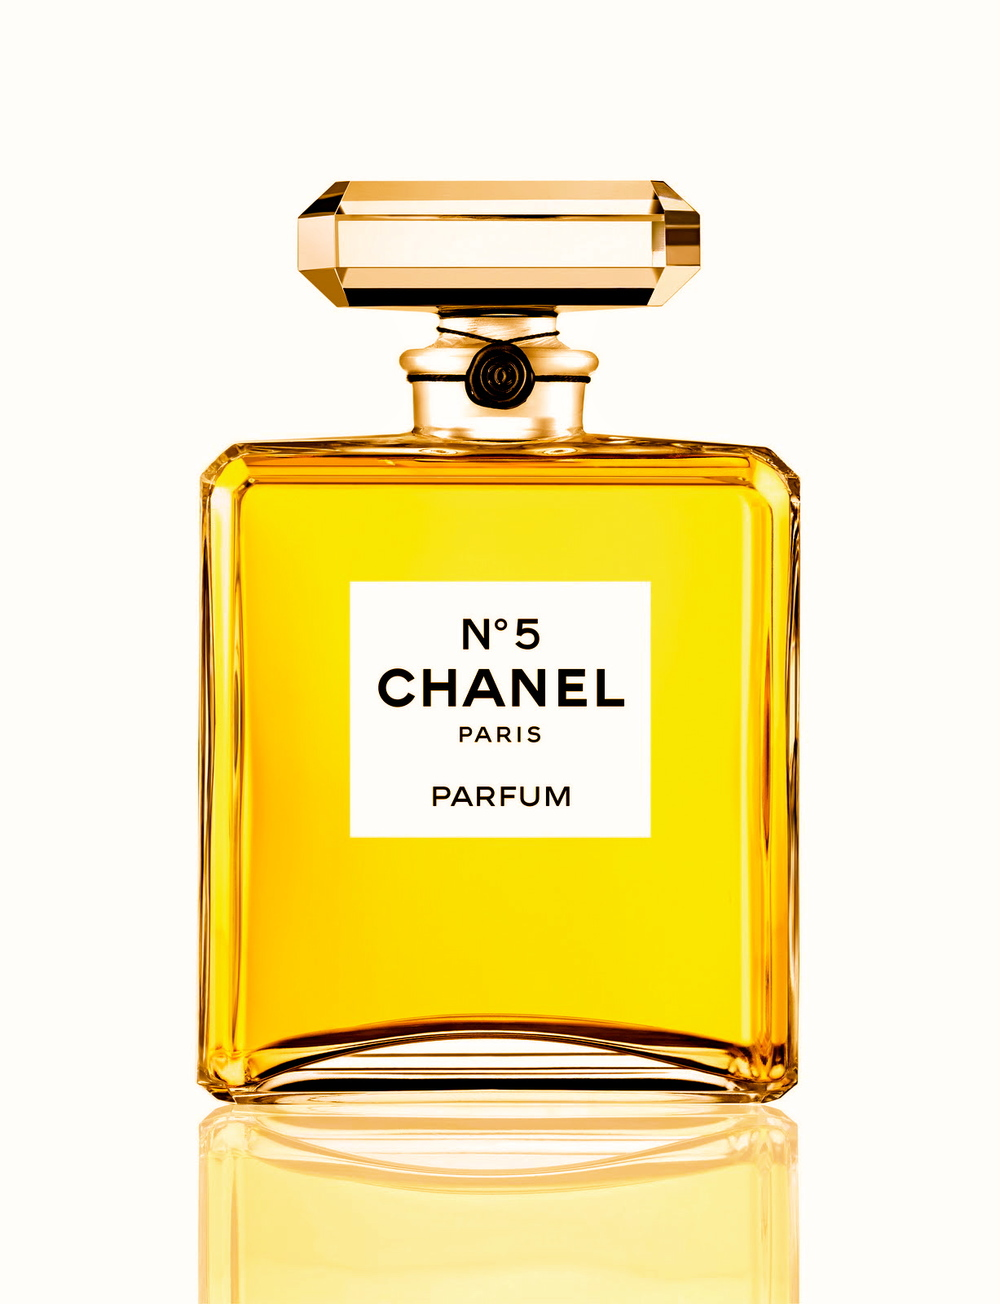 Chanel-No.5-beauty news-gregory dylan beauty-boy meets beauty